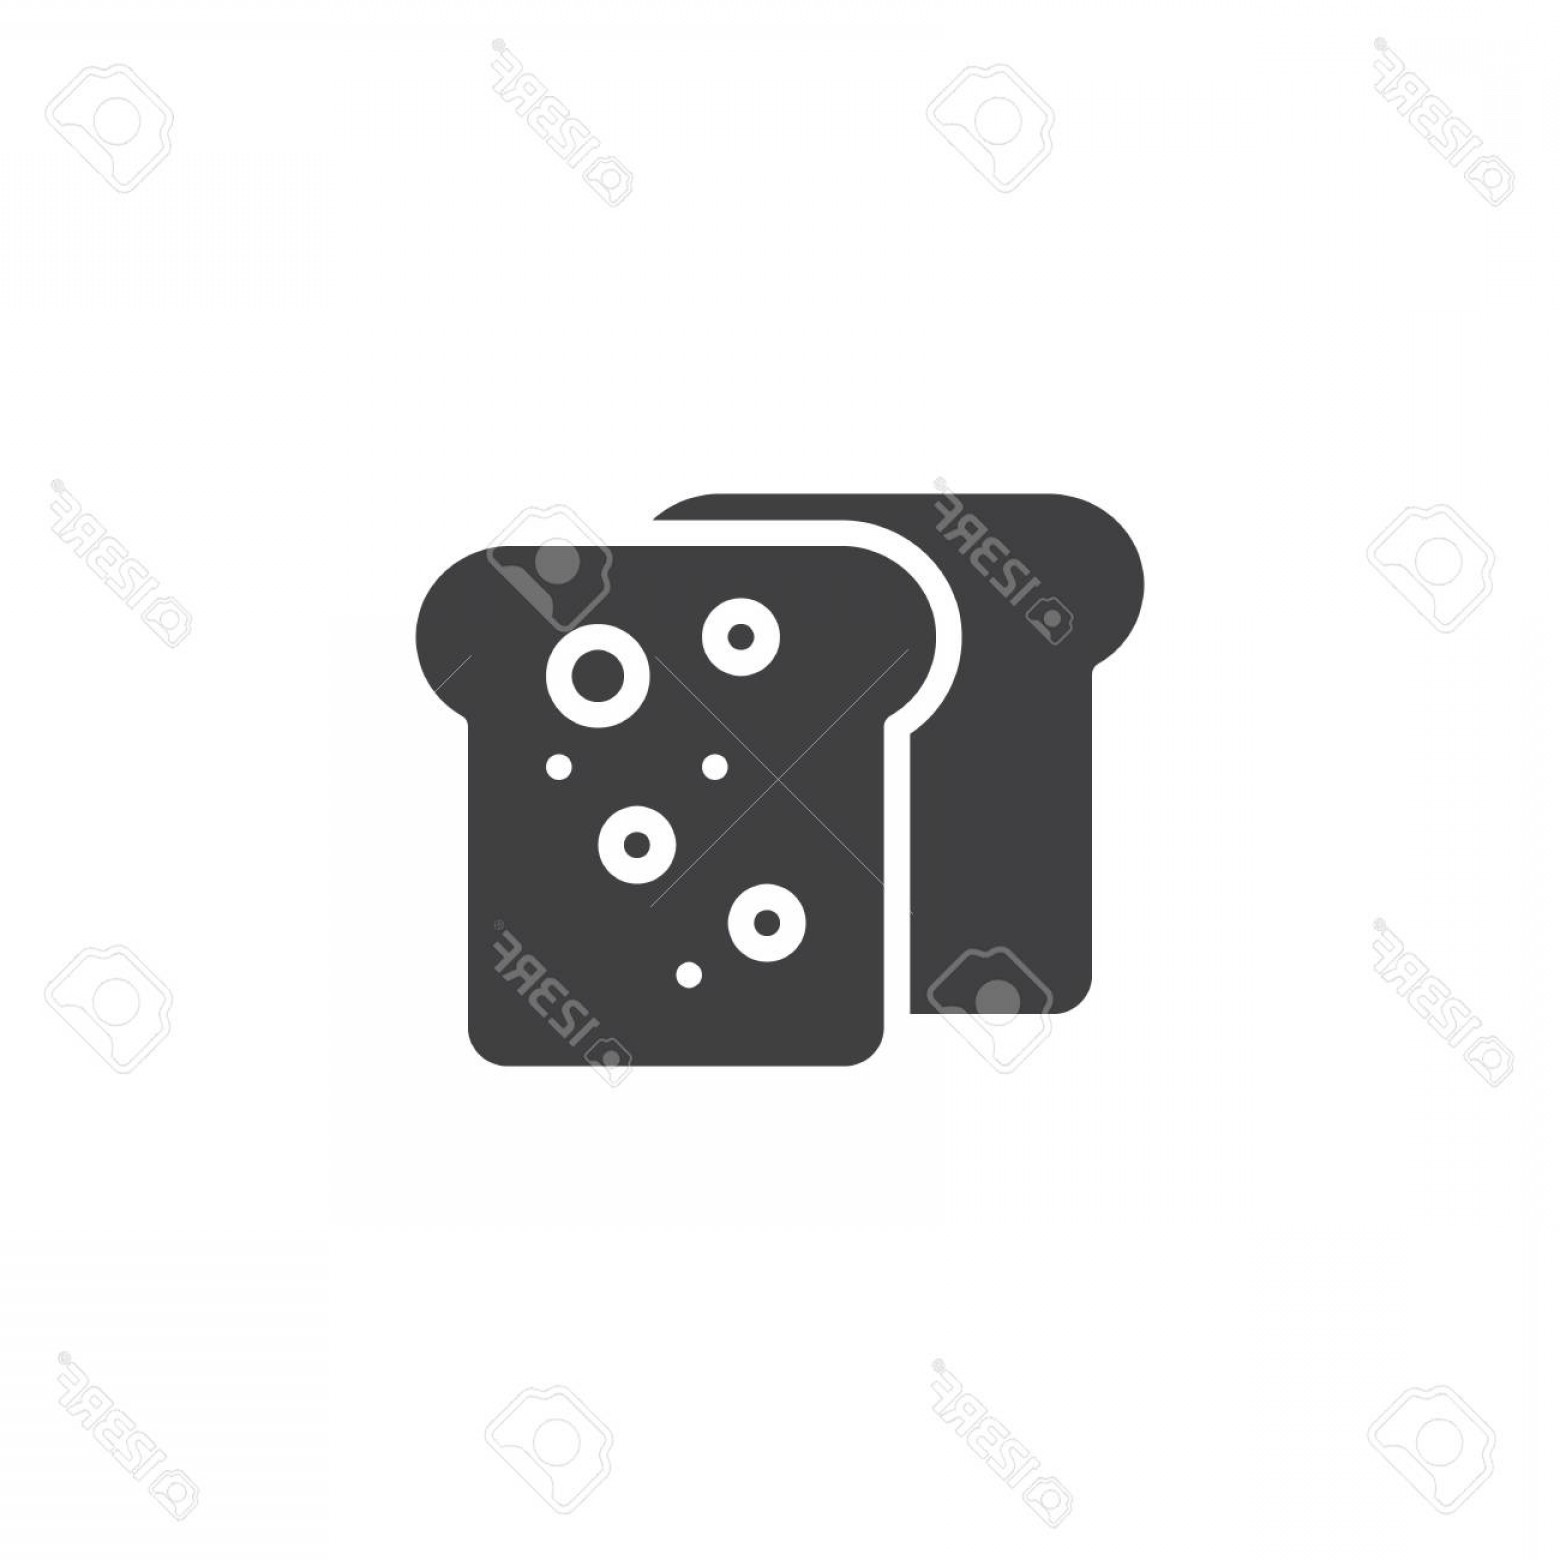 Xbox 360 Vector: Photostock Vector Toast Bread Vector Icon Filled Flat Sign For Mobile Concept And Web Design Two Pieces Of Bread Glyph